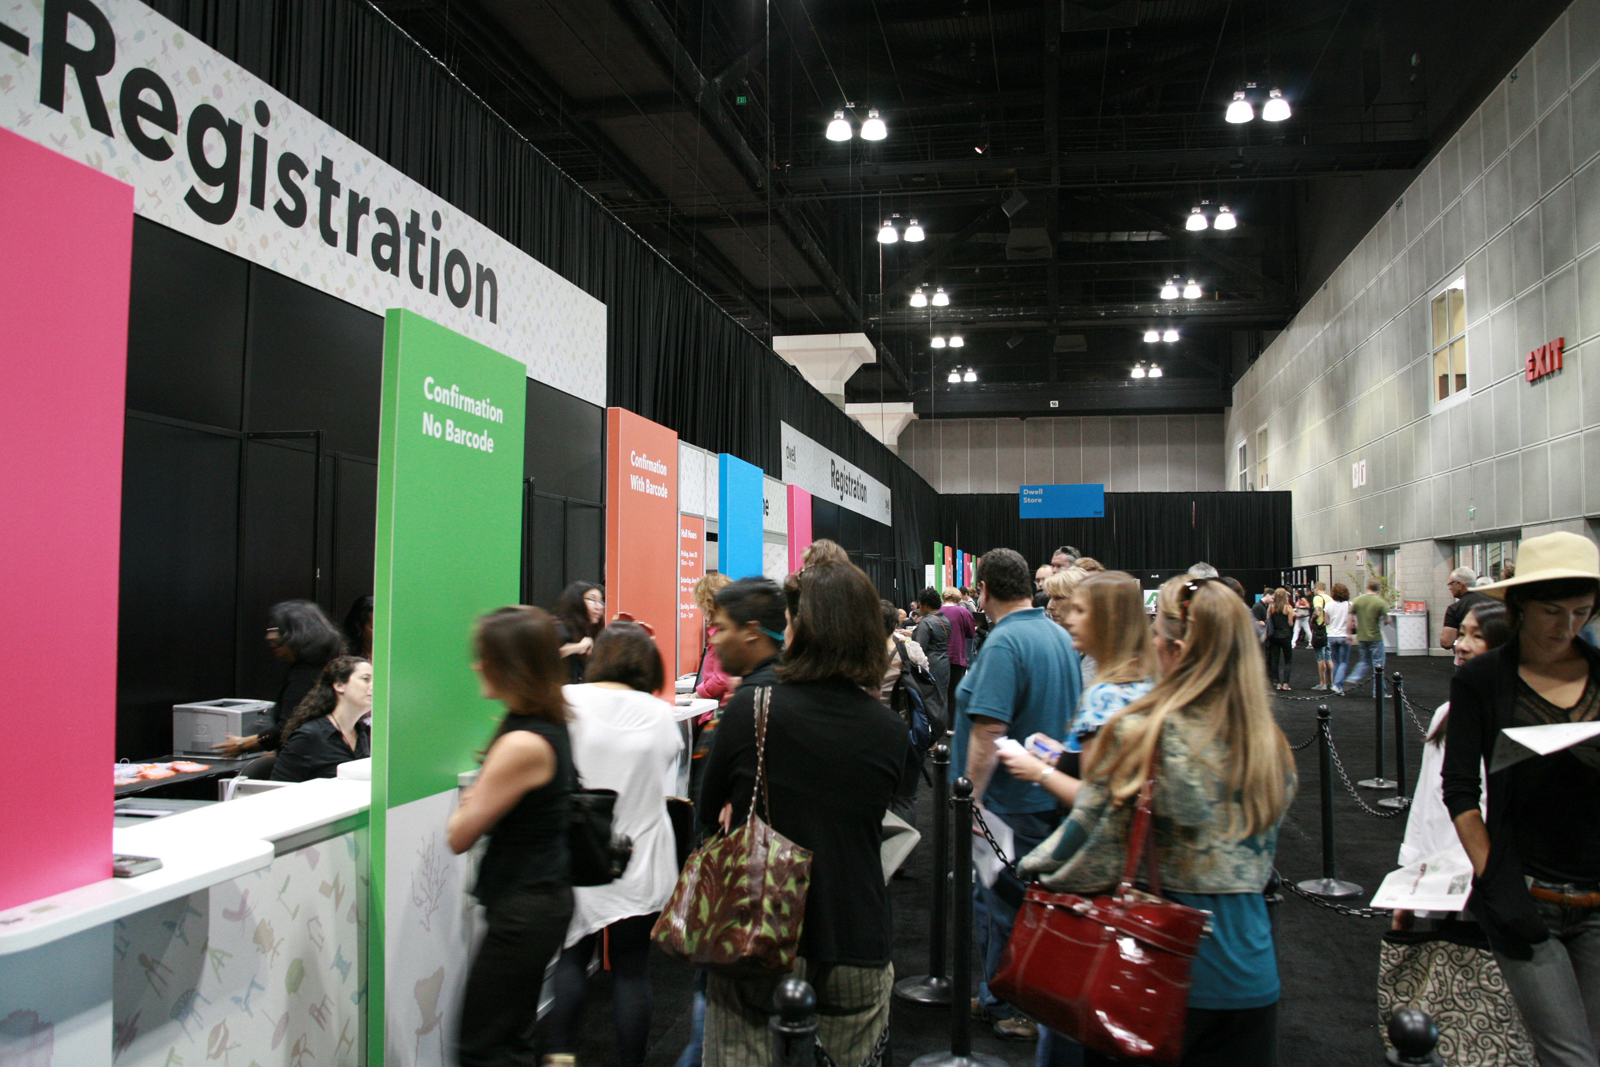 The first throng of attendees appeared a bit before 10 a.m., when the doors to Dwell on Design opened.